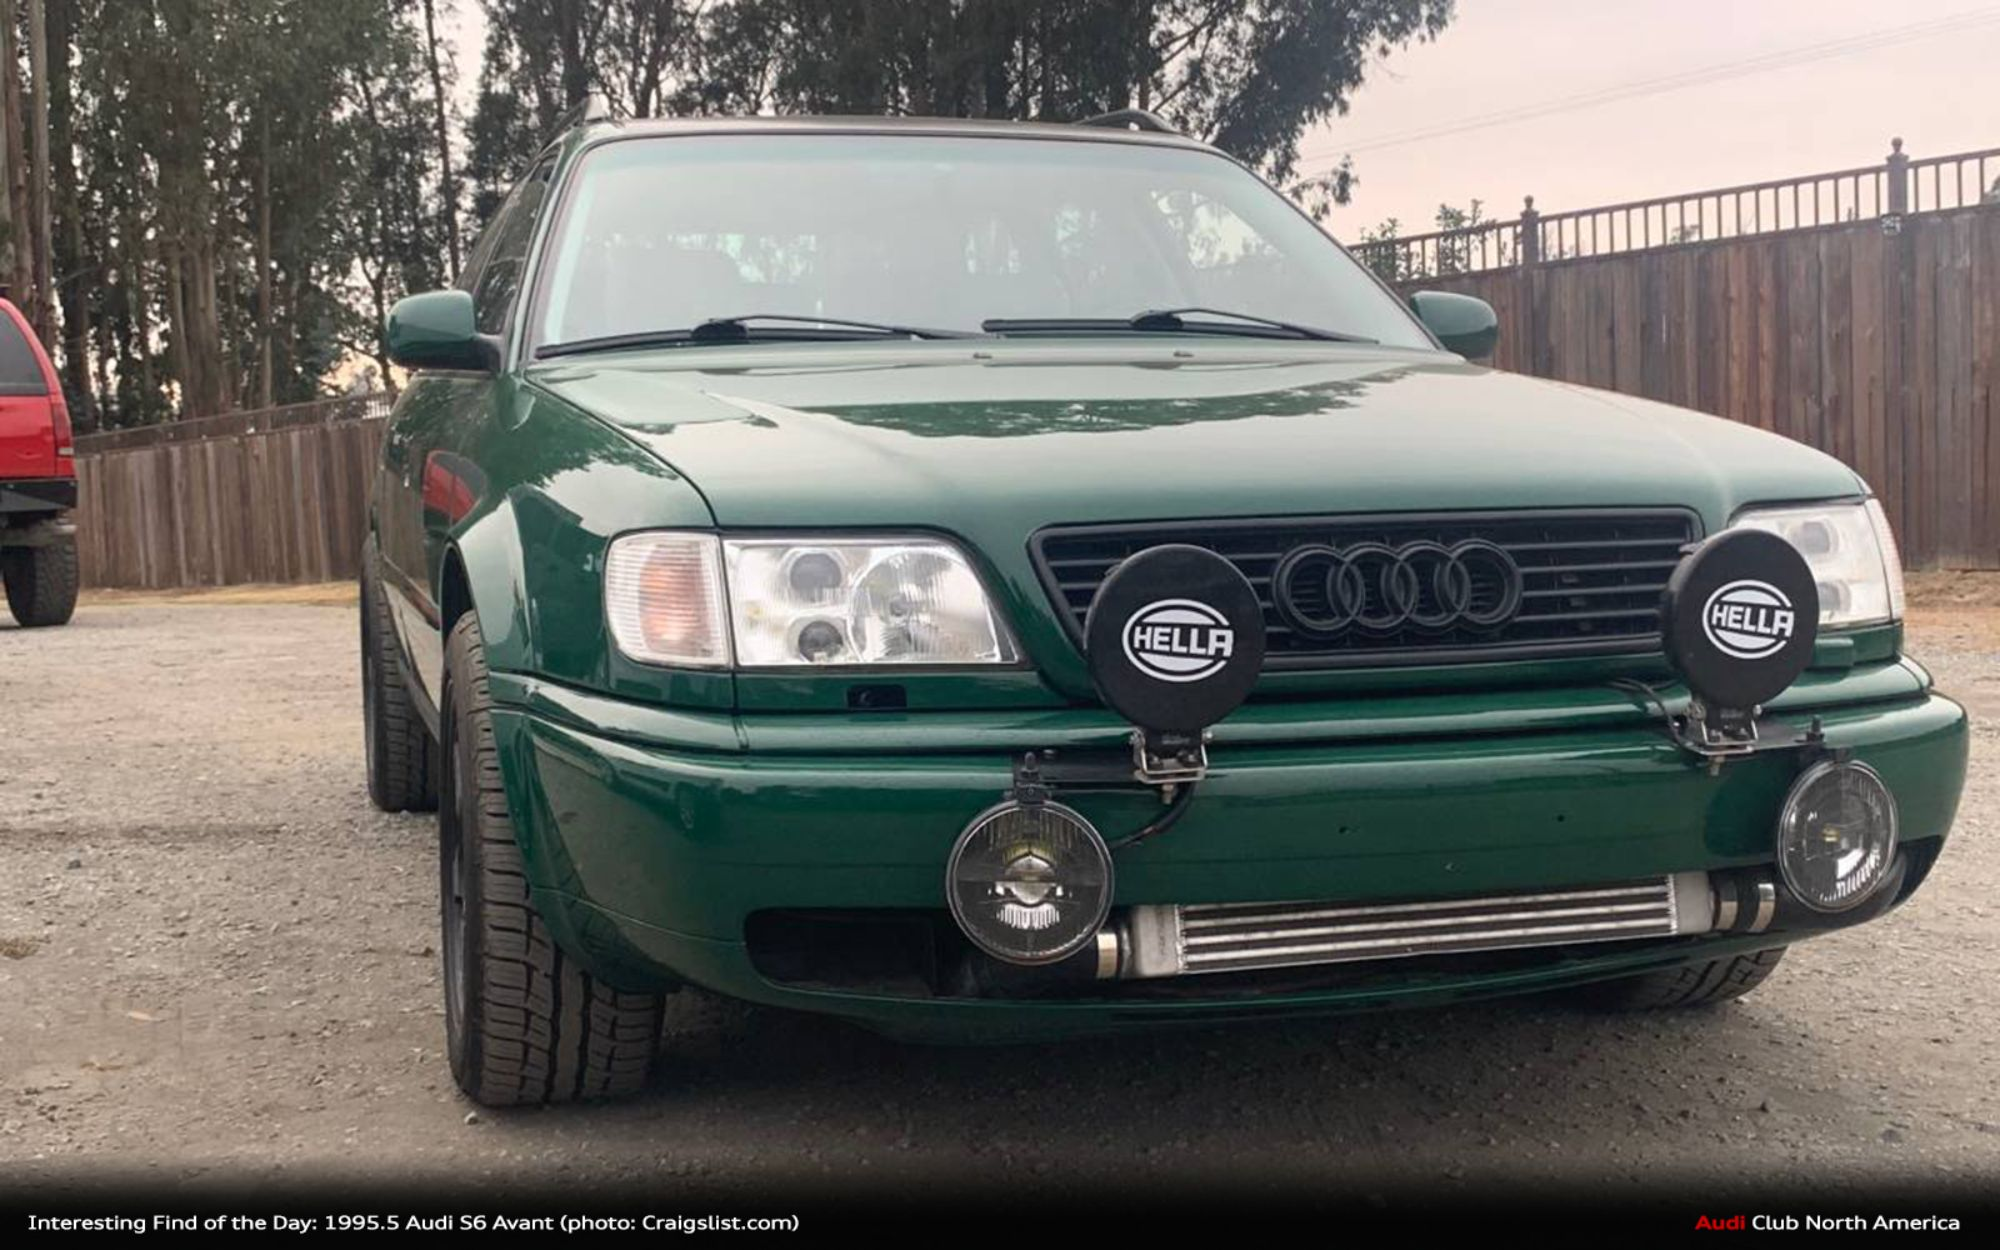 Find of the Day: 1995.5 Audi S6 Avant